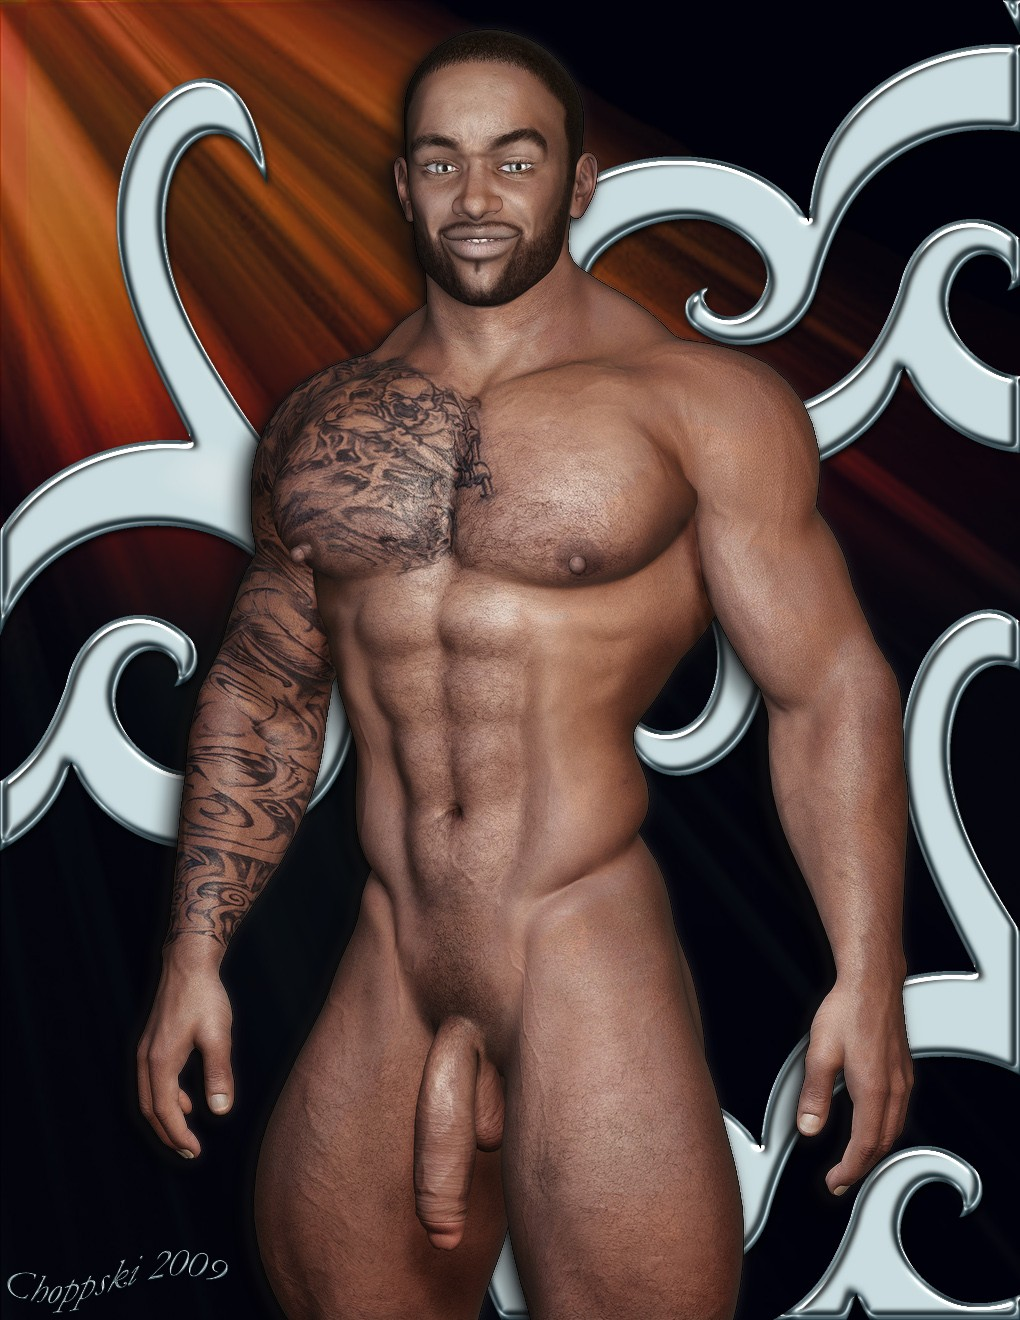 Gay Male Adult Gallery